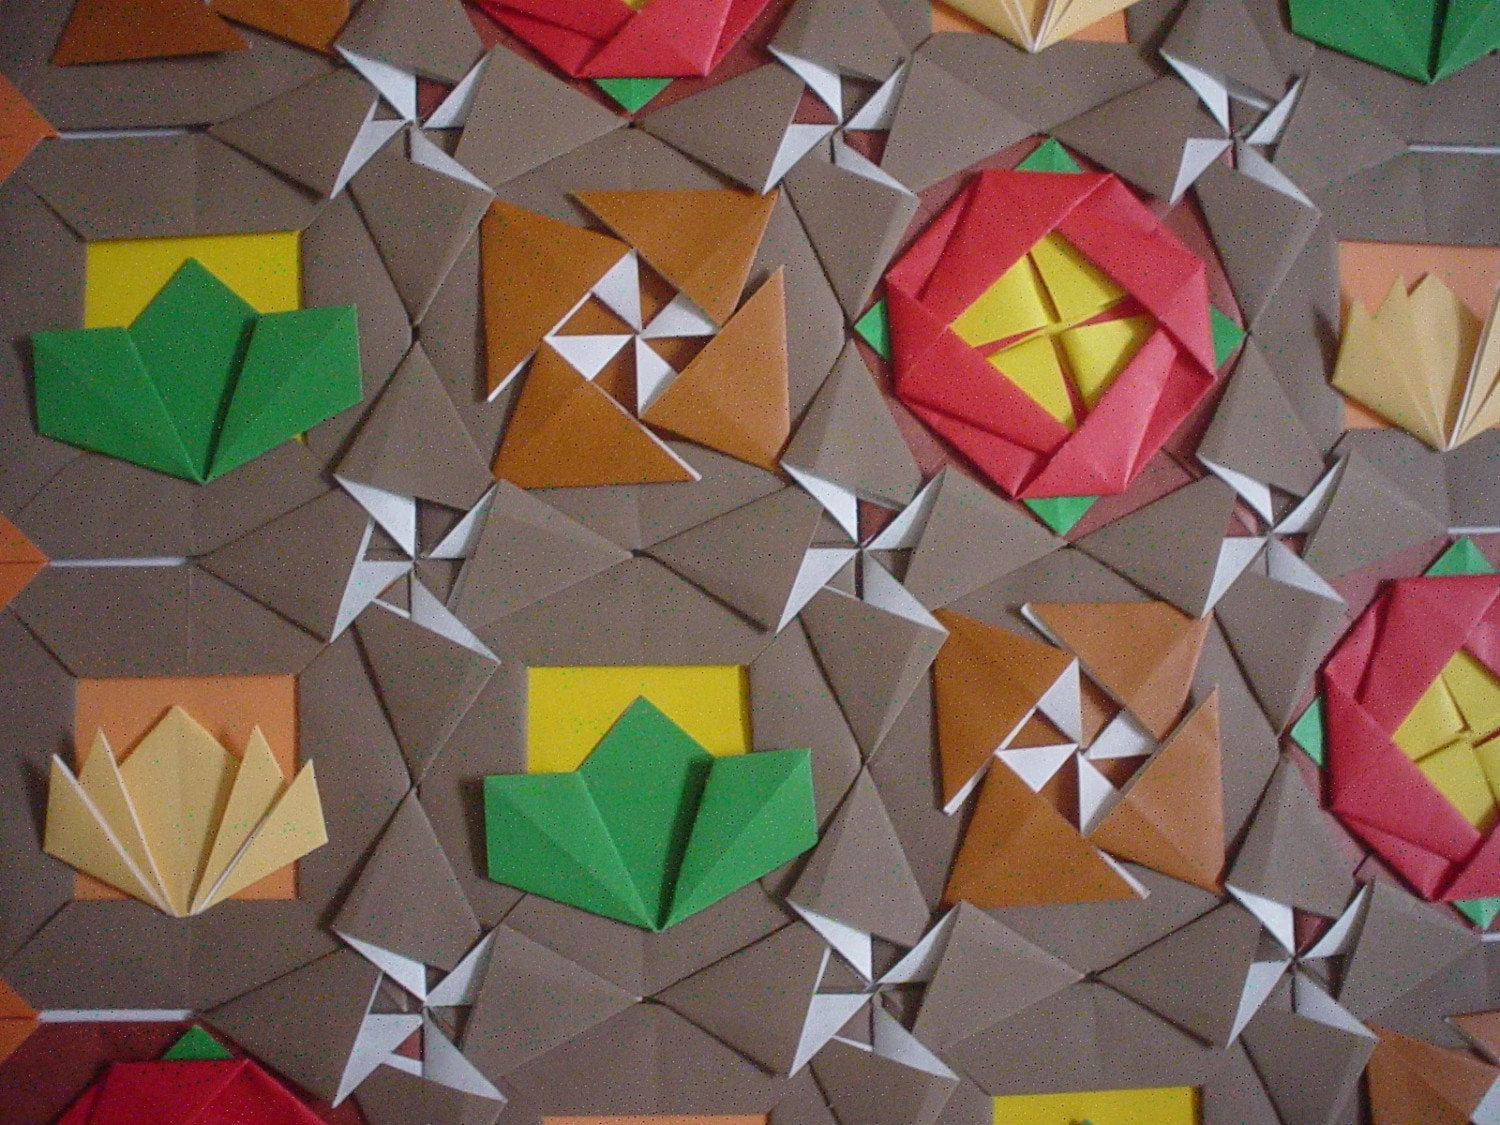 Paper Quilted Origami Mosaic Wall Art Chocolate By